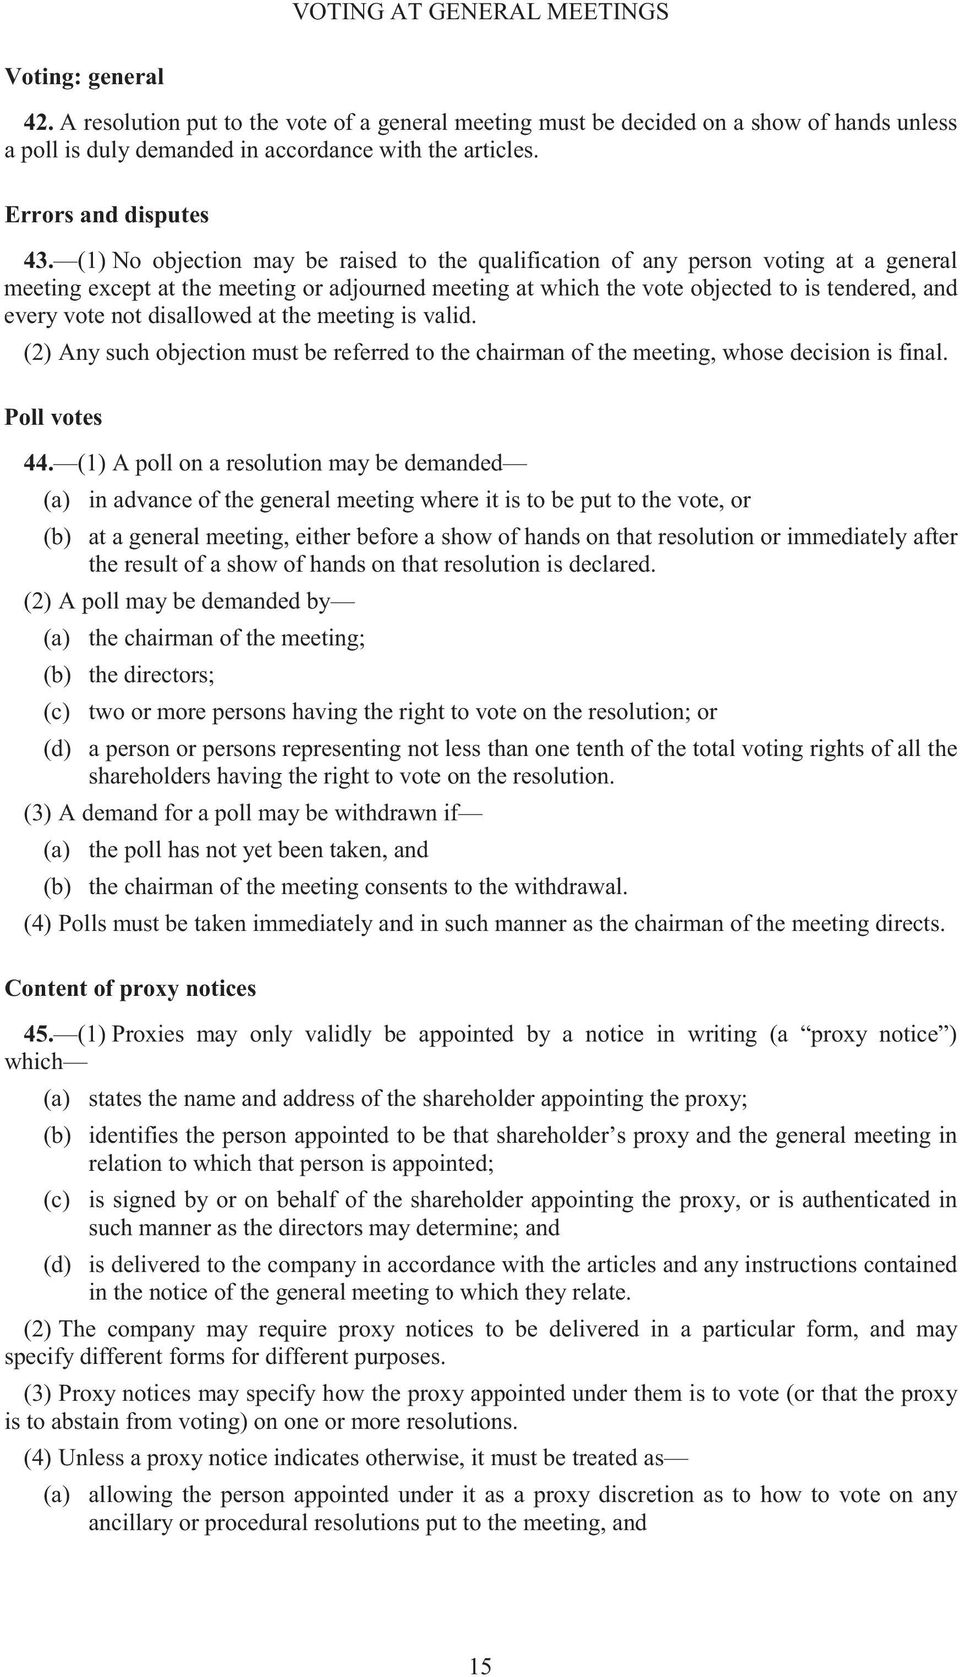 (1) No objection may be raised to the qualification of any person voting at a general meeting except at the meeting or adjourned meeting at which the vote objected to is tendered, and every vote not